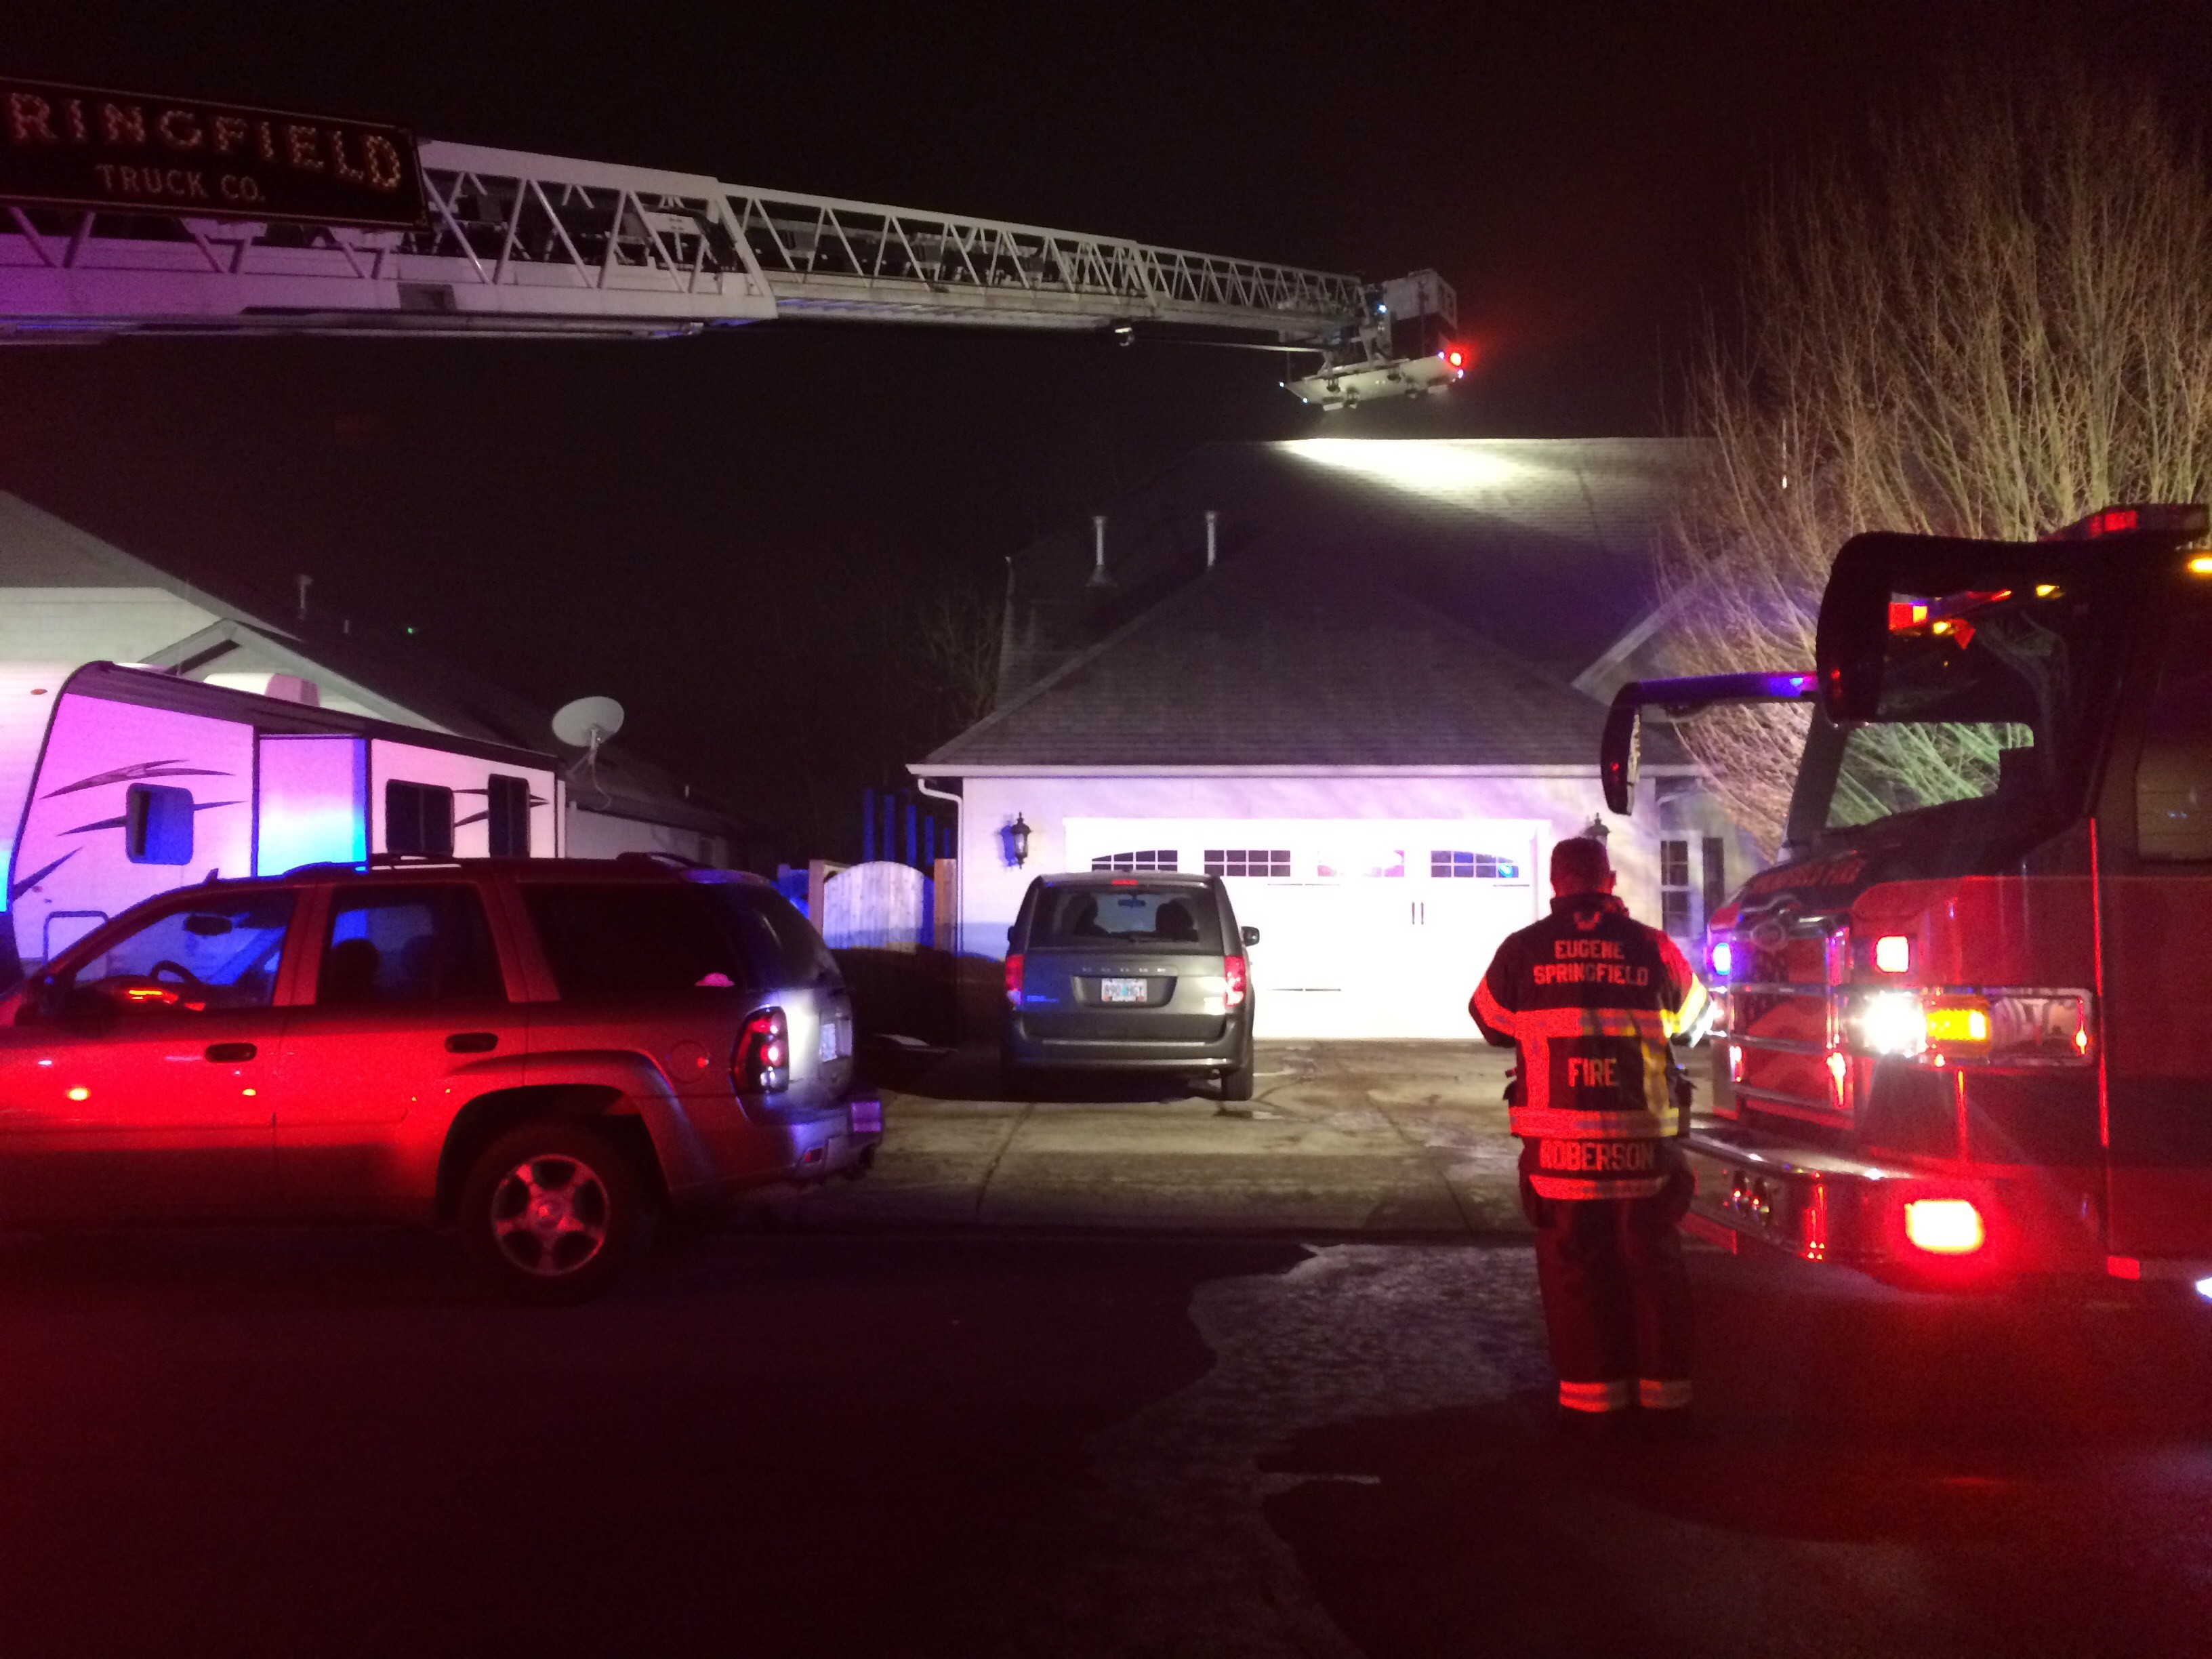 Fire crews on scene at a house fire on Clear Vue Lane in Springfield, Dec. 13, 2017. (SBG)